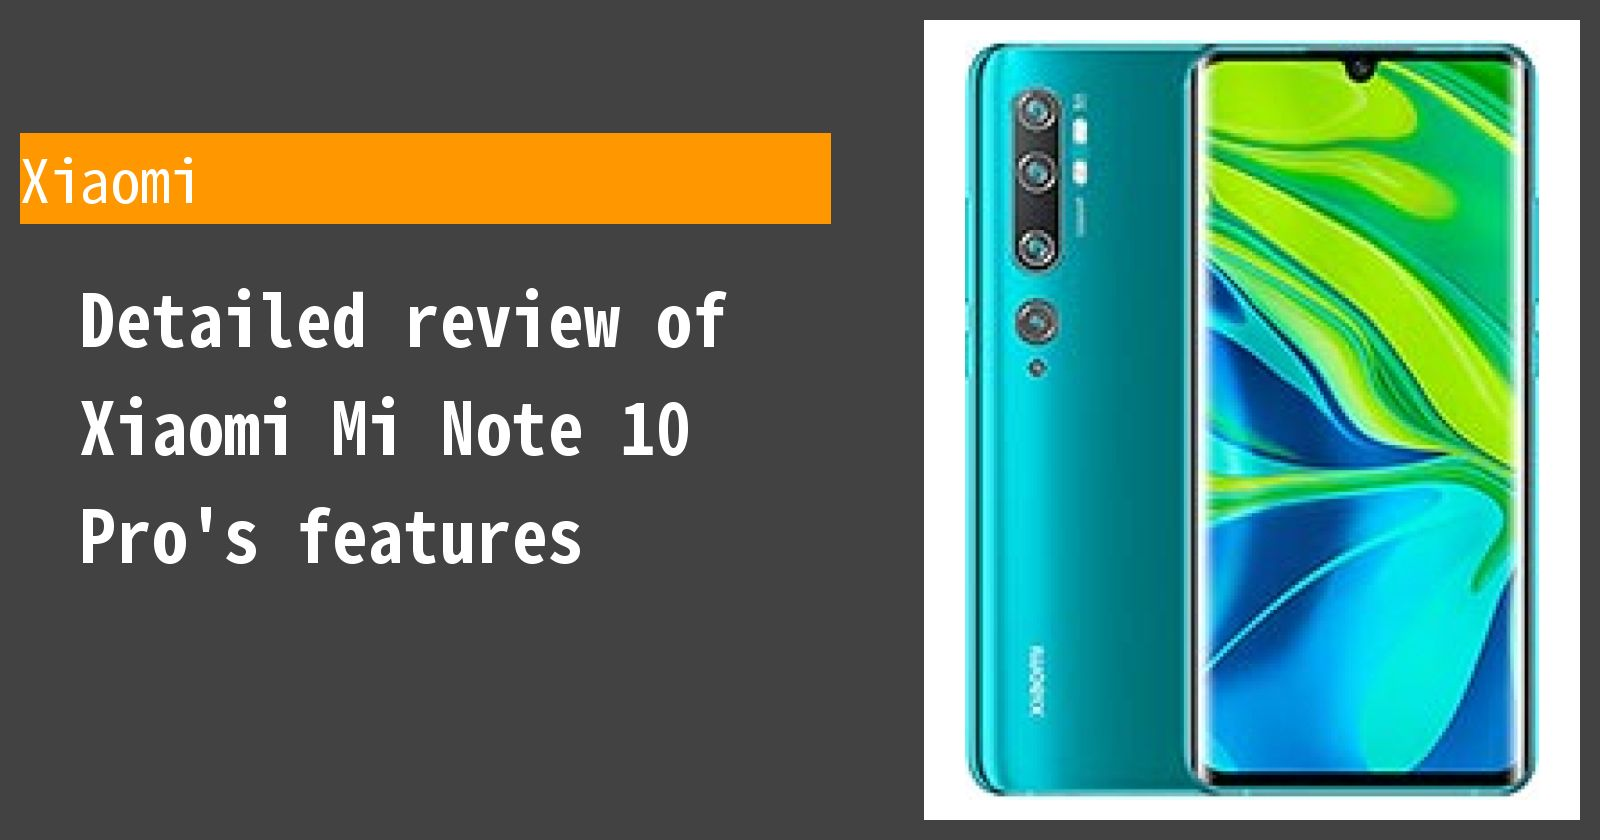 Detailed review of Xiaomi Mi Note 10 Pro's features